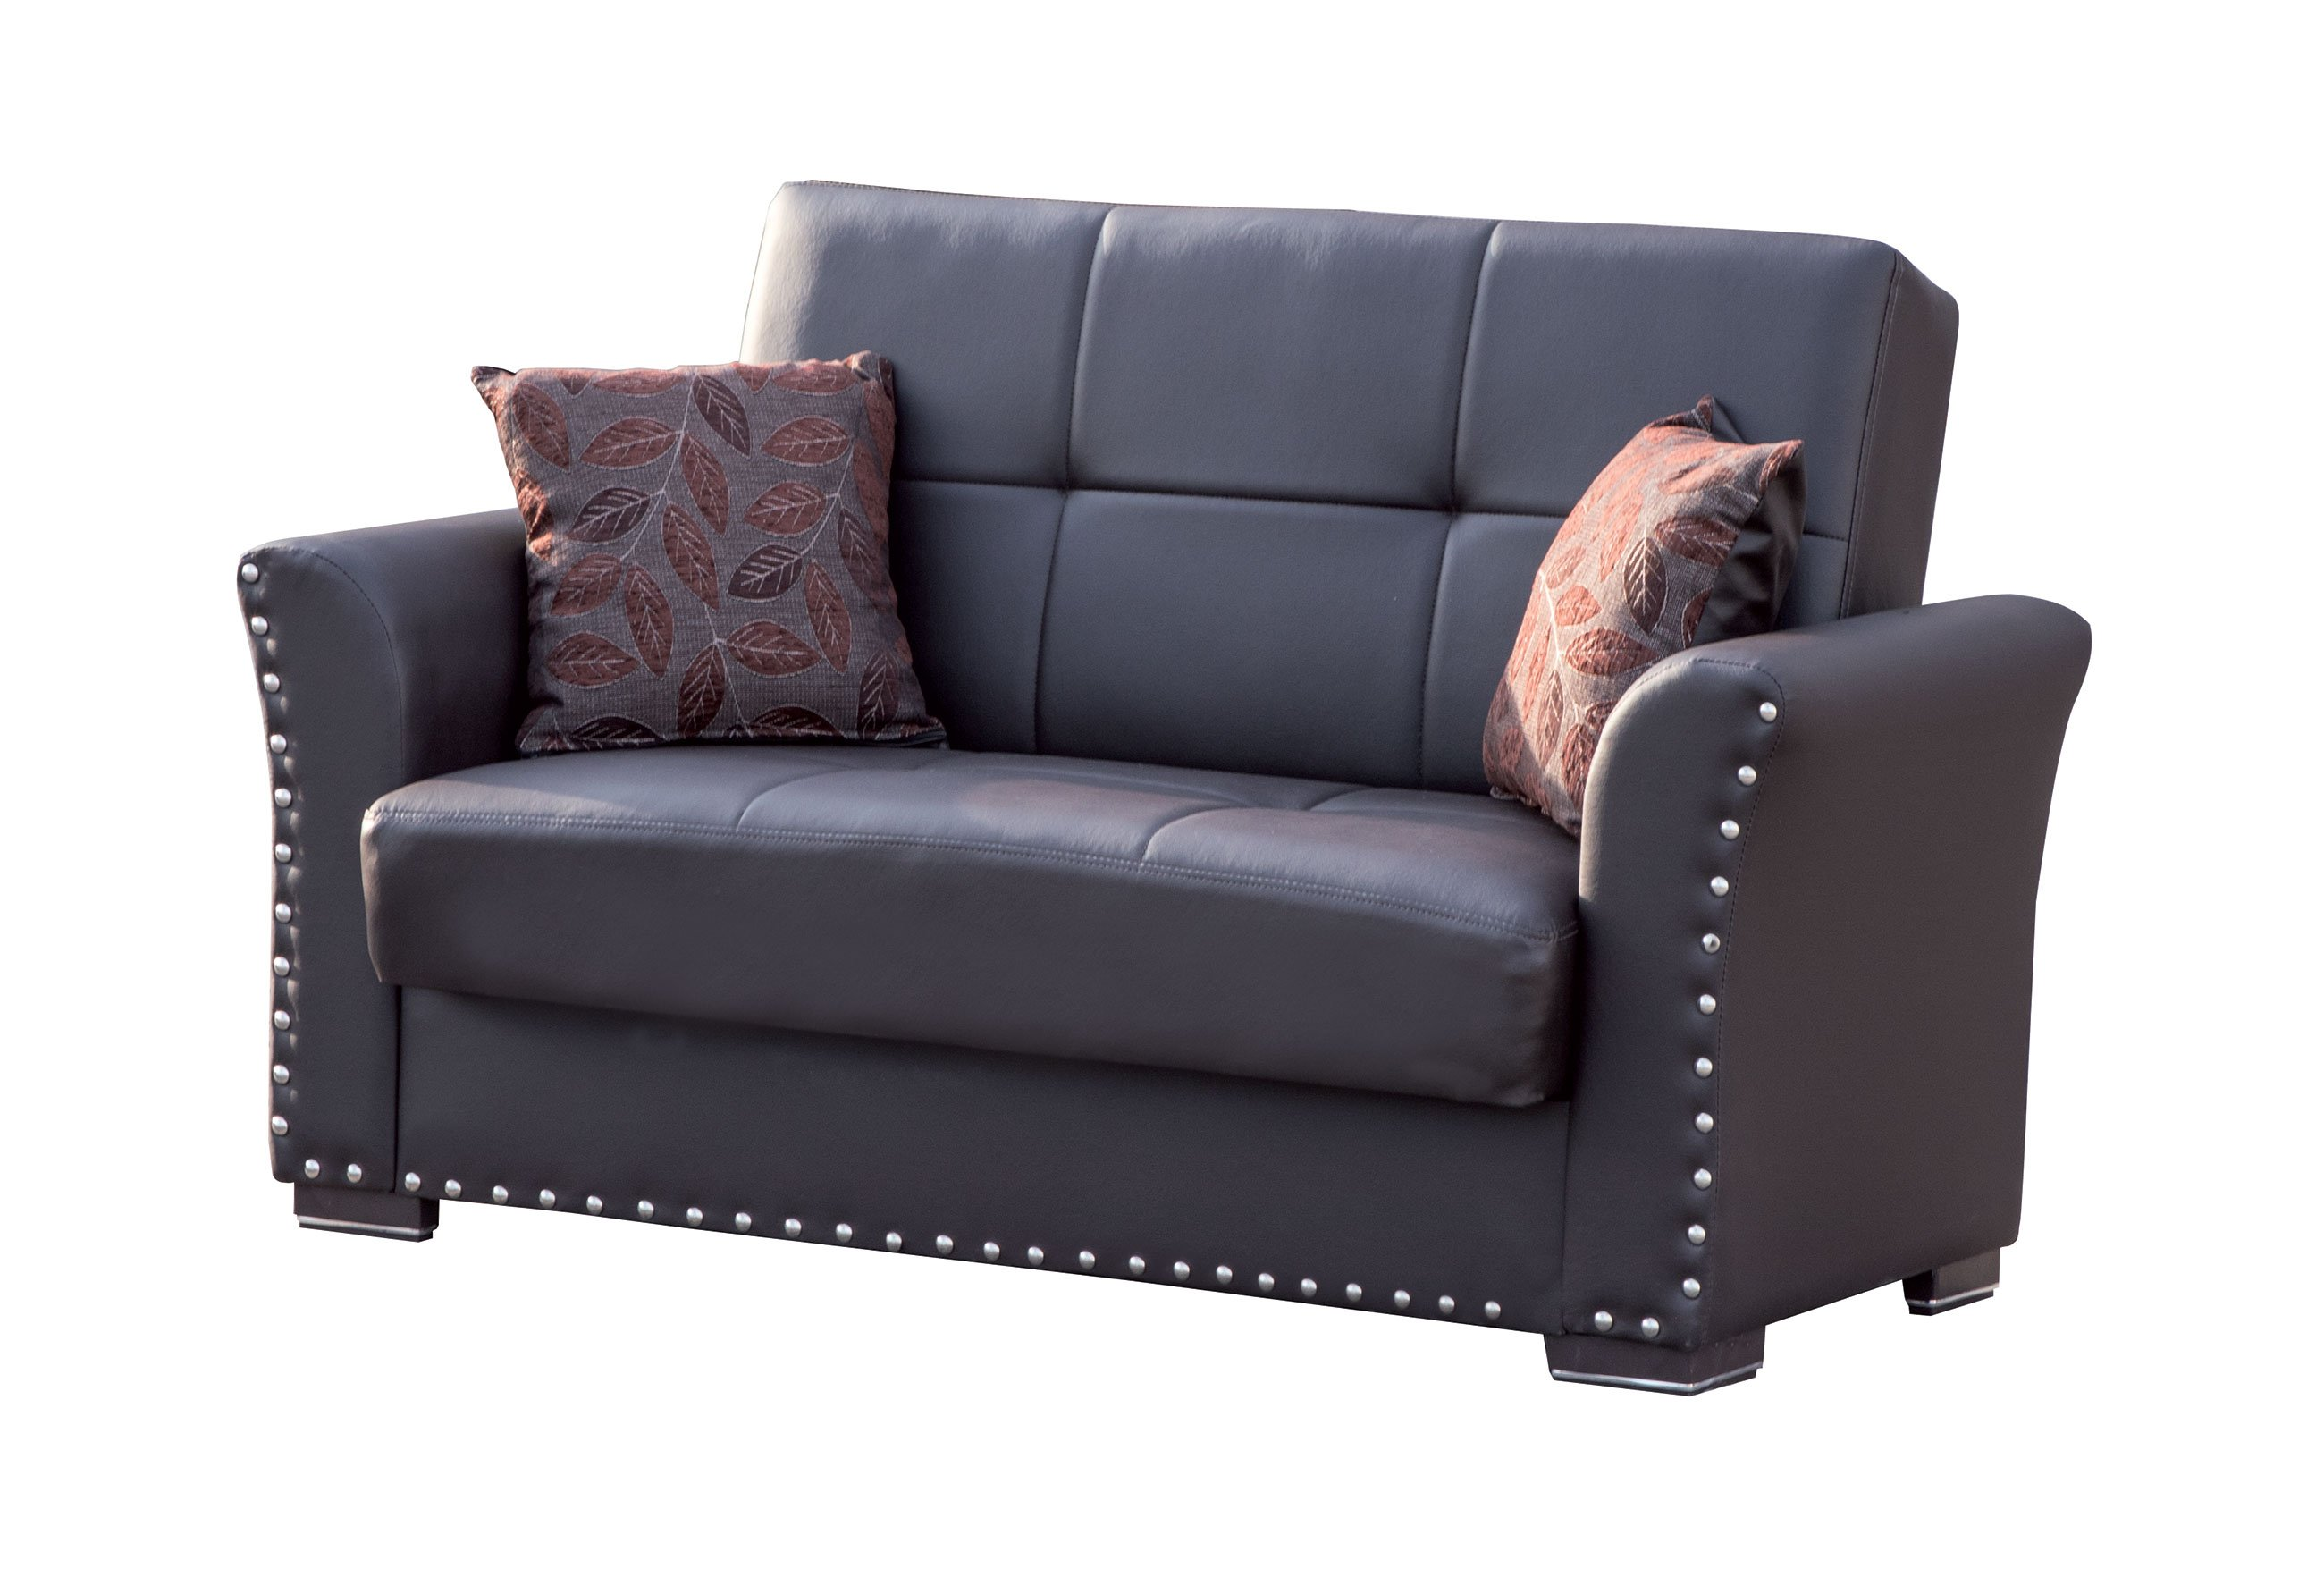 Diva Brown PU Leather Convertible Loveseat by Casamode